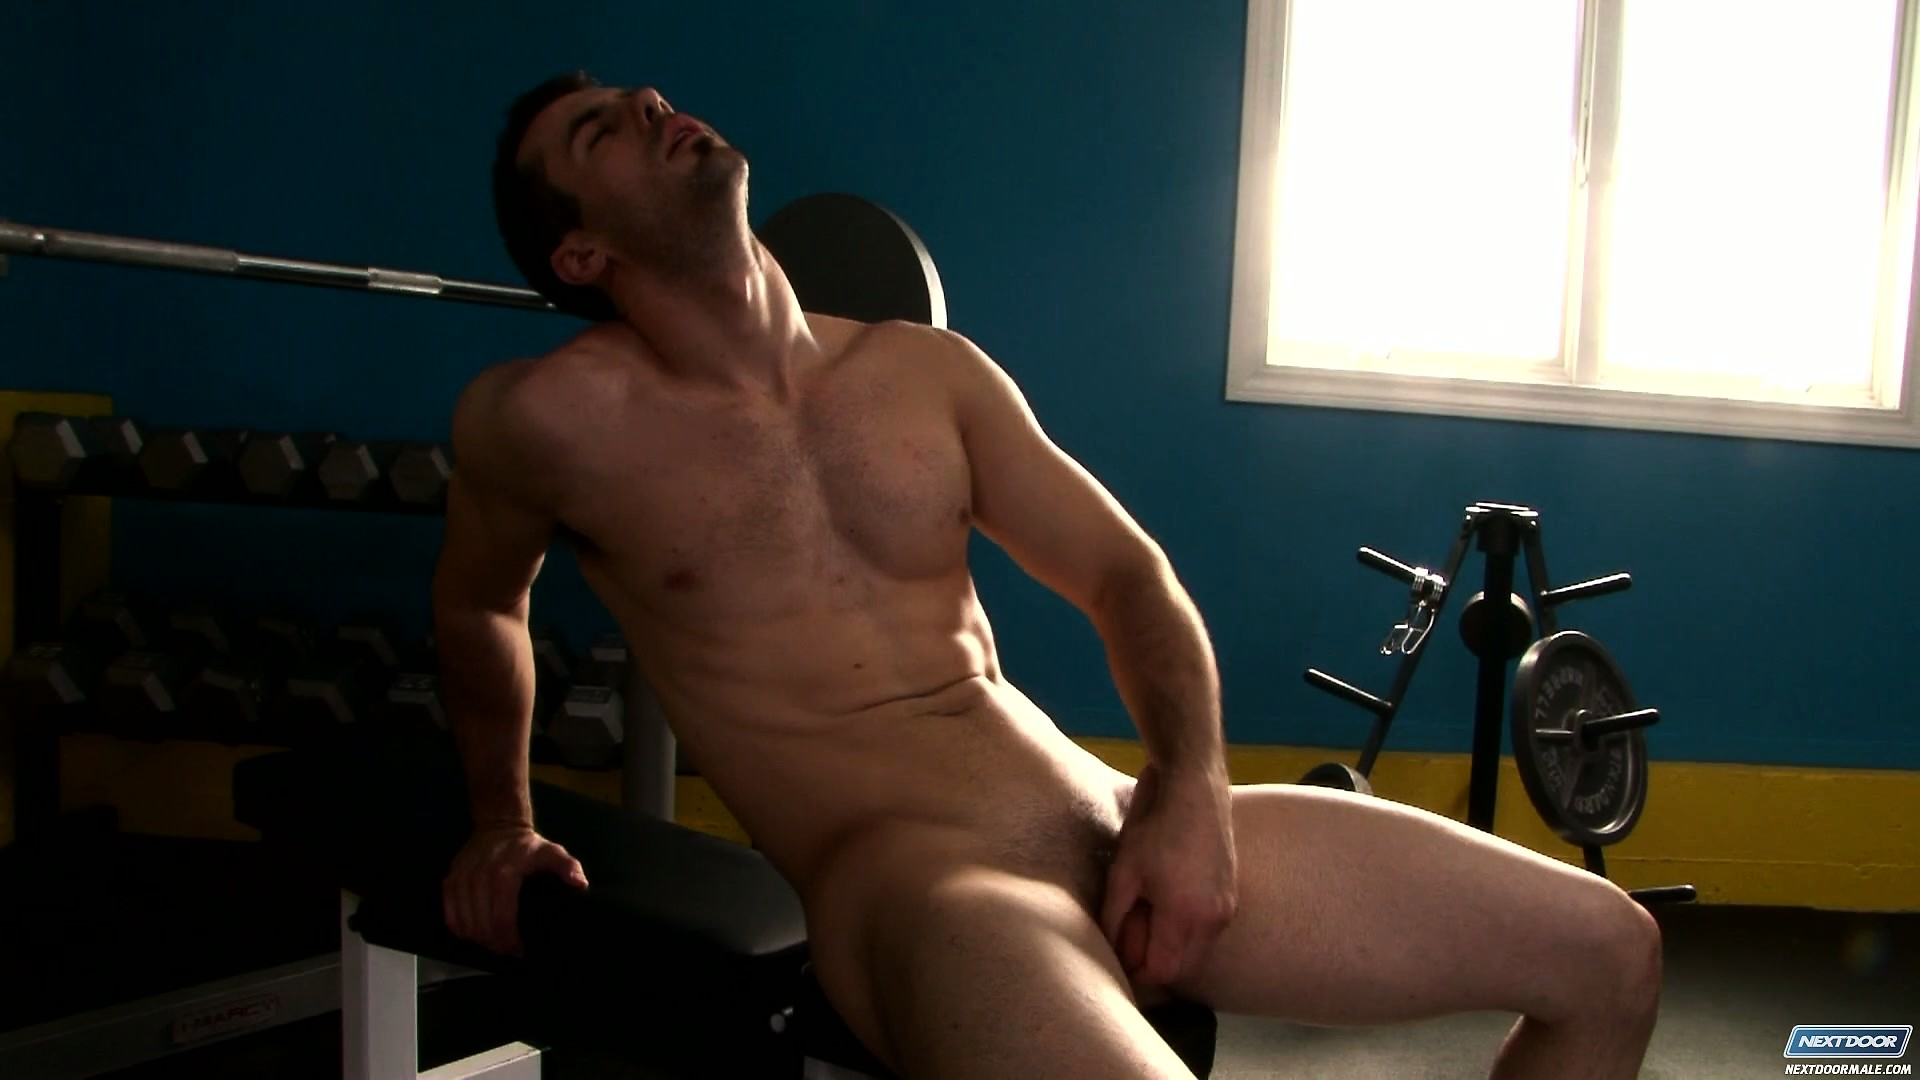 Porn Tube of Brock Cooper Takes A Break From His Workout Session To Satisfy His Urges And Needs